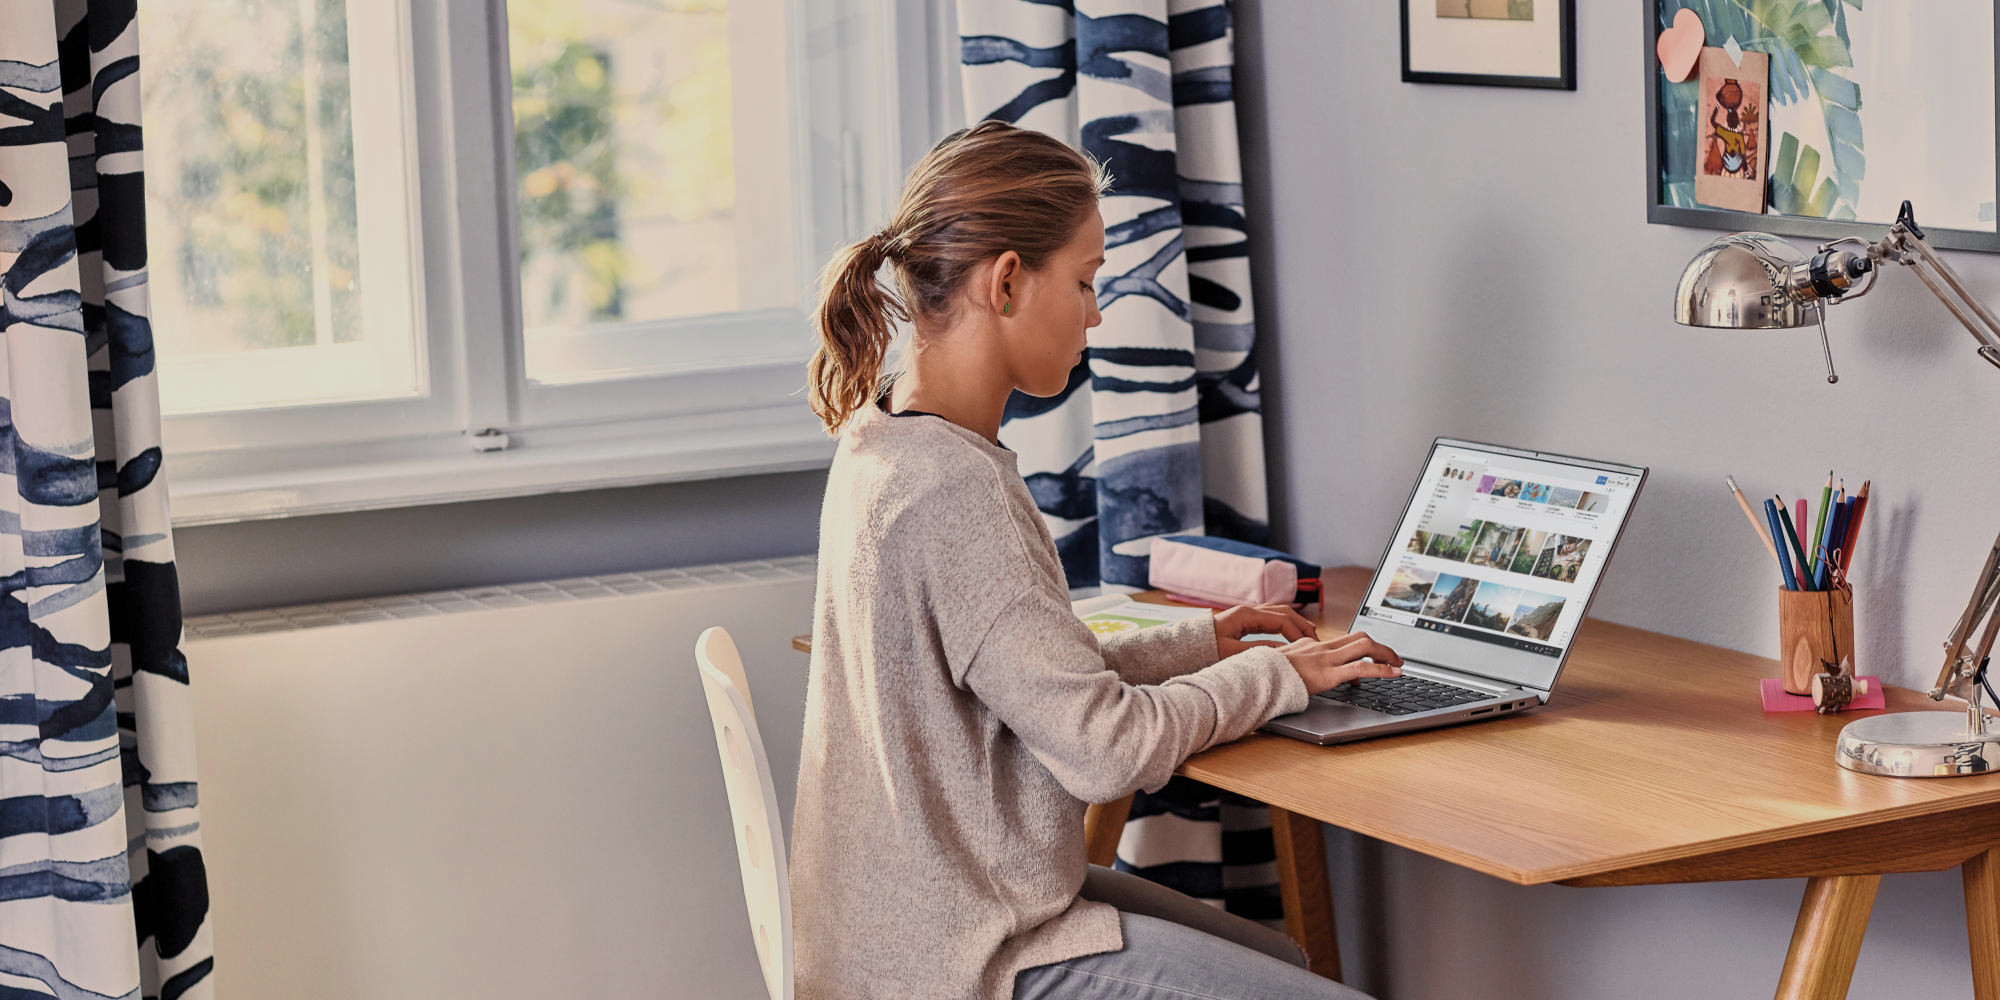 a person sitting at a table using a laptop